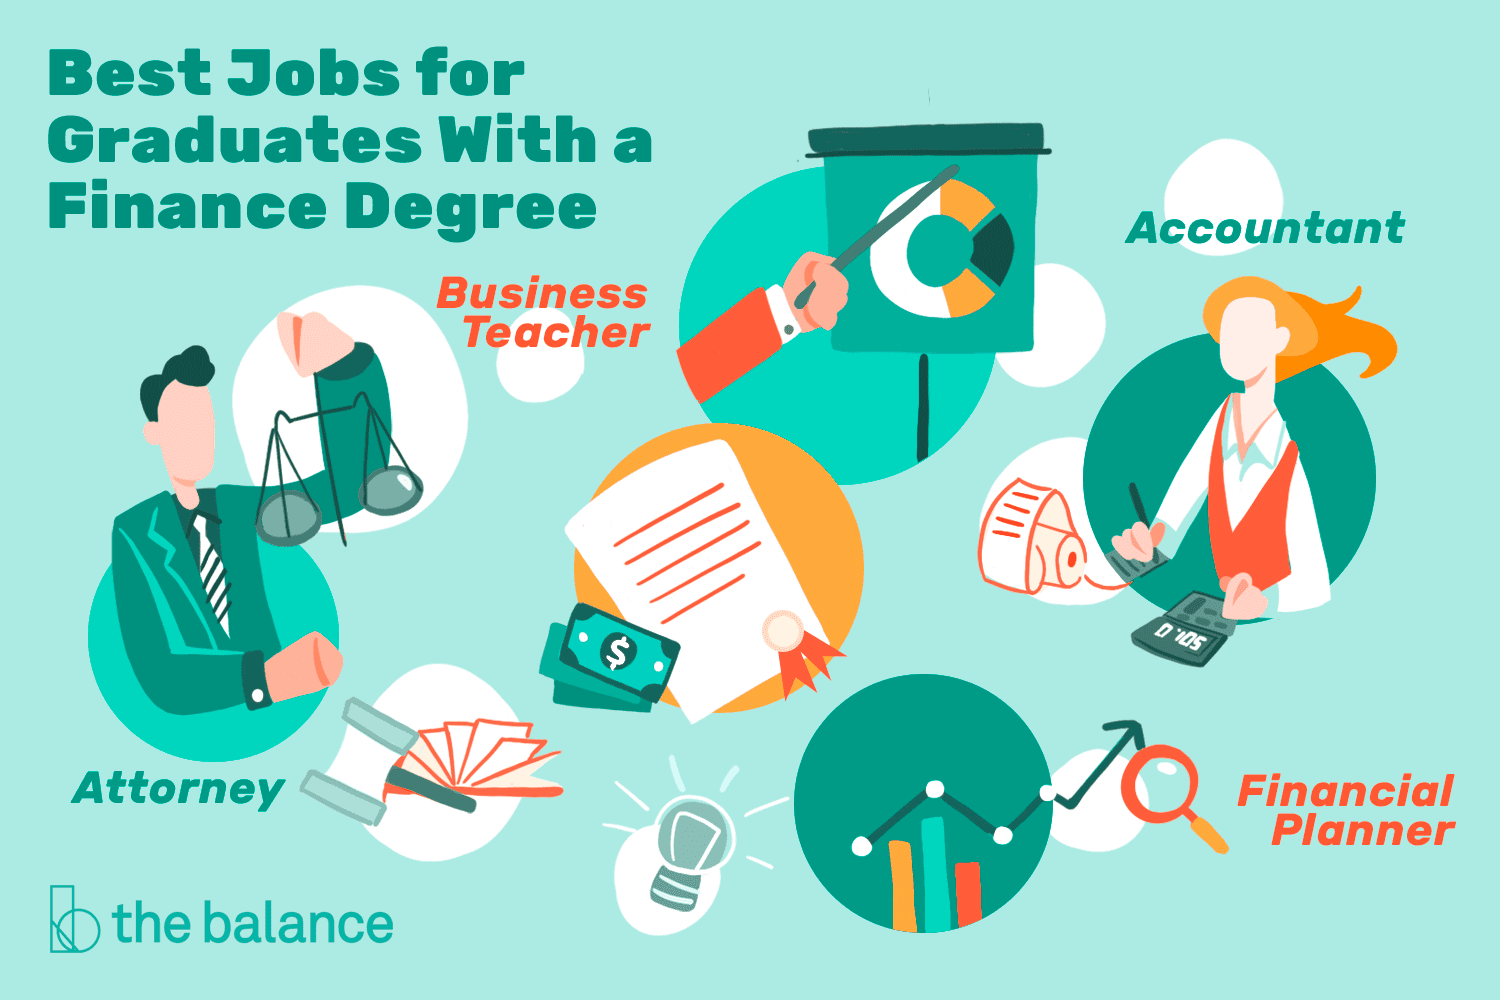 Best Jobs for Graduates With a Finance Degree